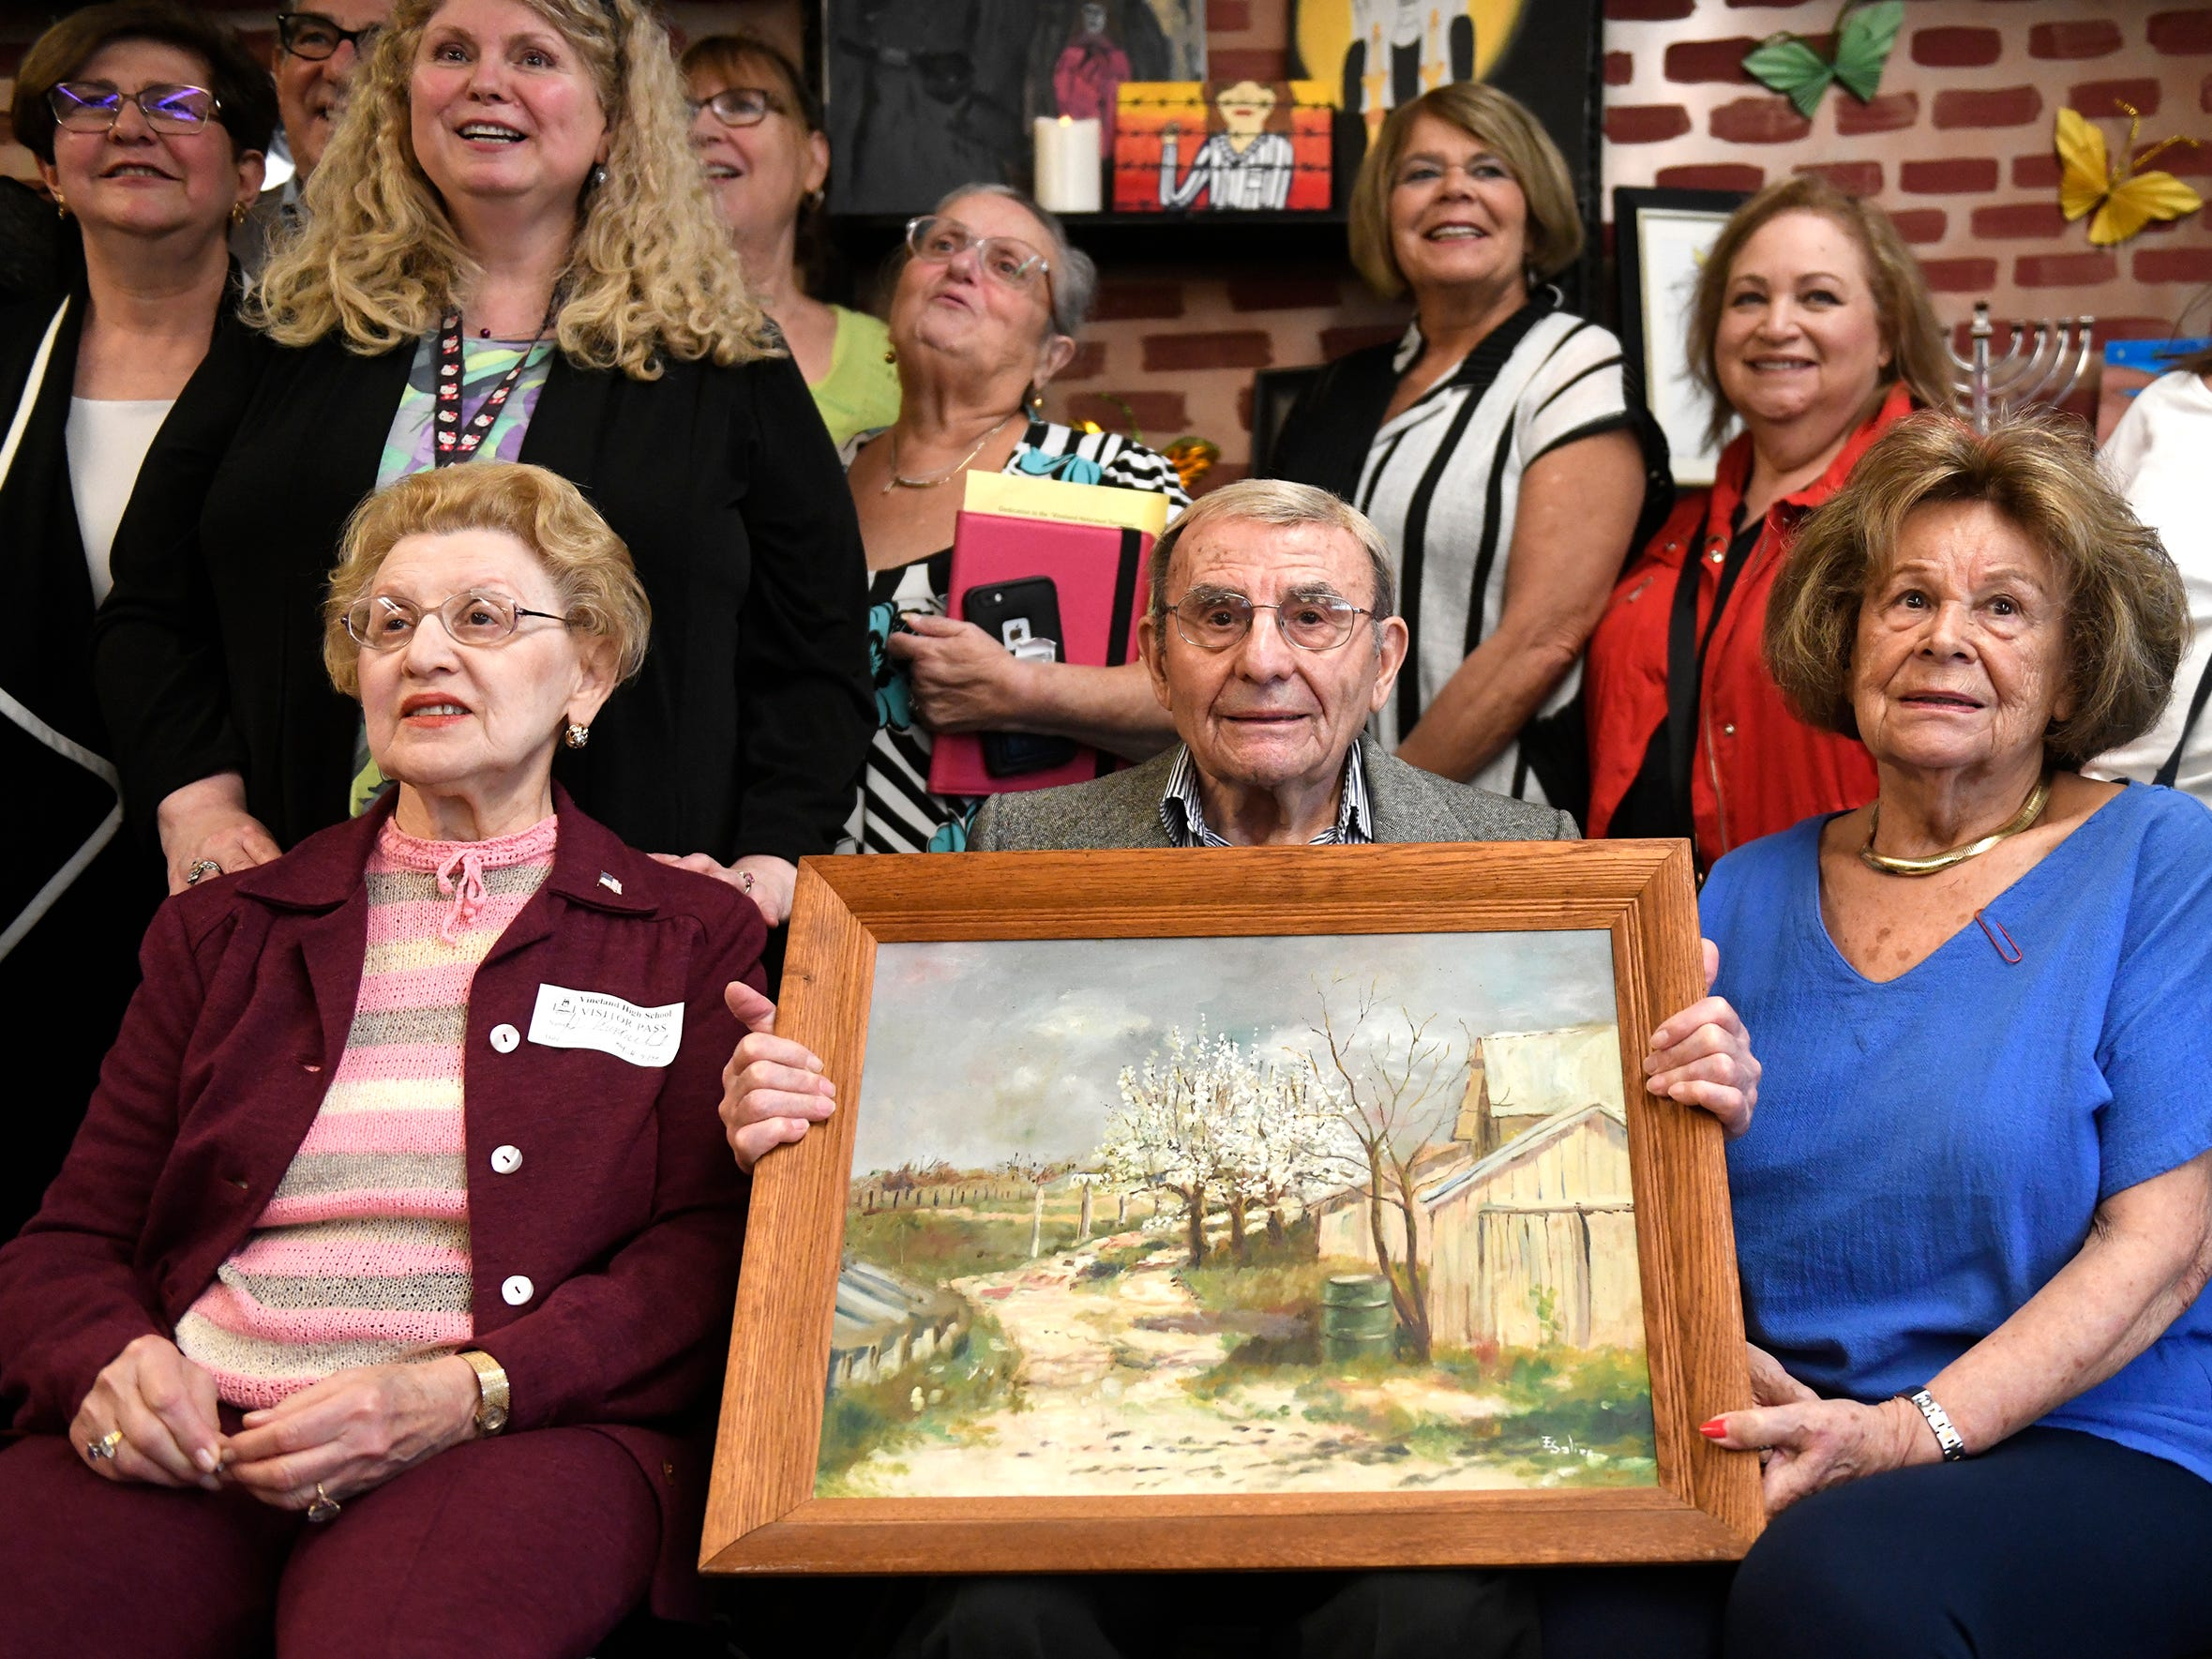 Holocaust survivors front row left to right, Genia Kuhnreich, Isadore Randel and Phyllis Dunkleman attend a dedication for the Kuhnreich/Teichman/Media Holocaust Research Center and Permanent Exhibit at Vineland High School.